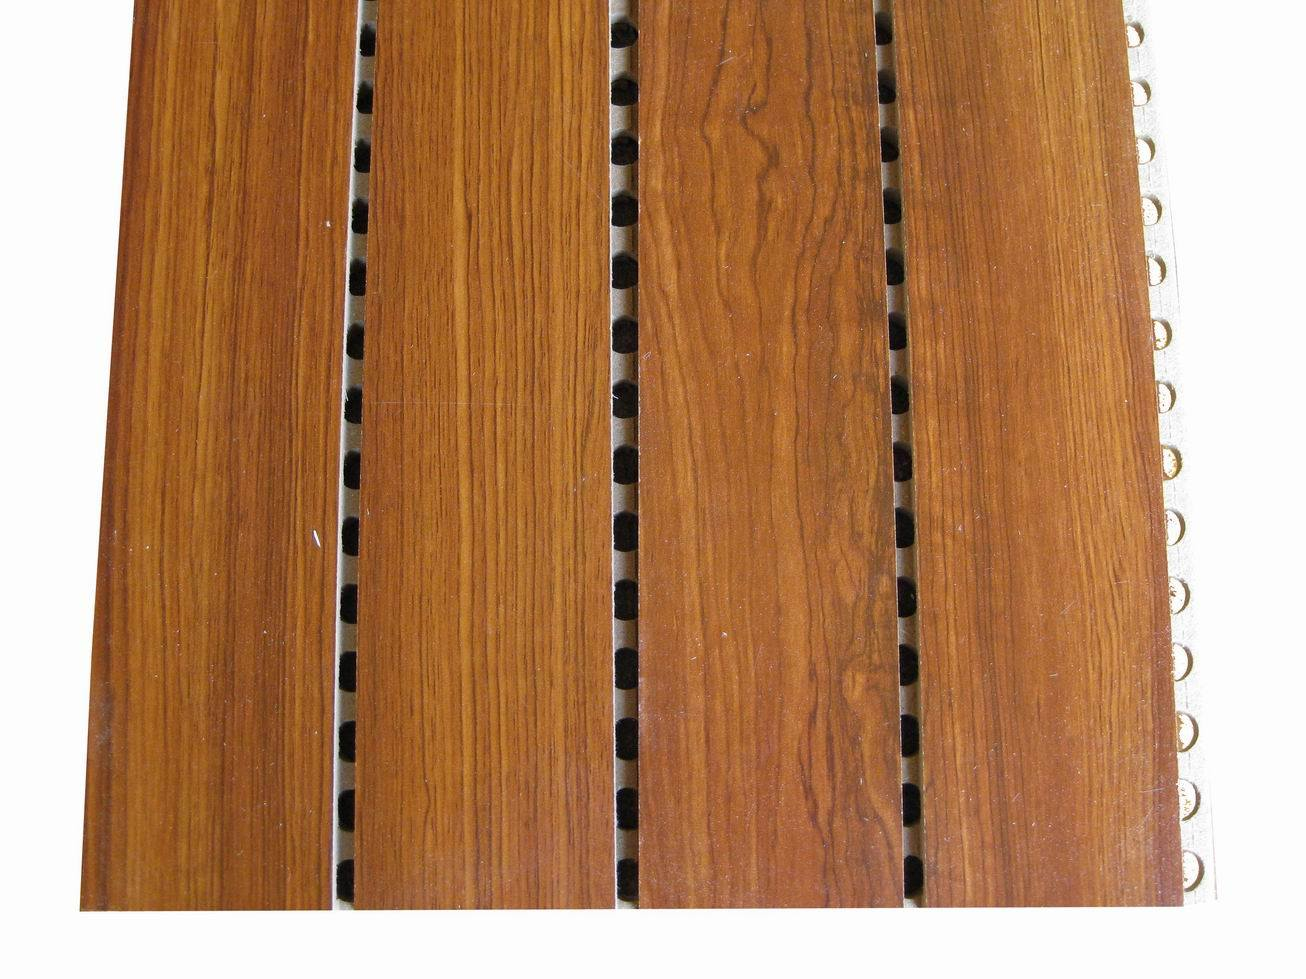 El panel ac stico de madera yzw 014 el panel ac stico for Panel perforado madera